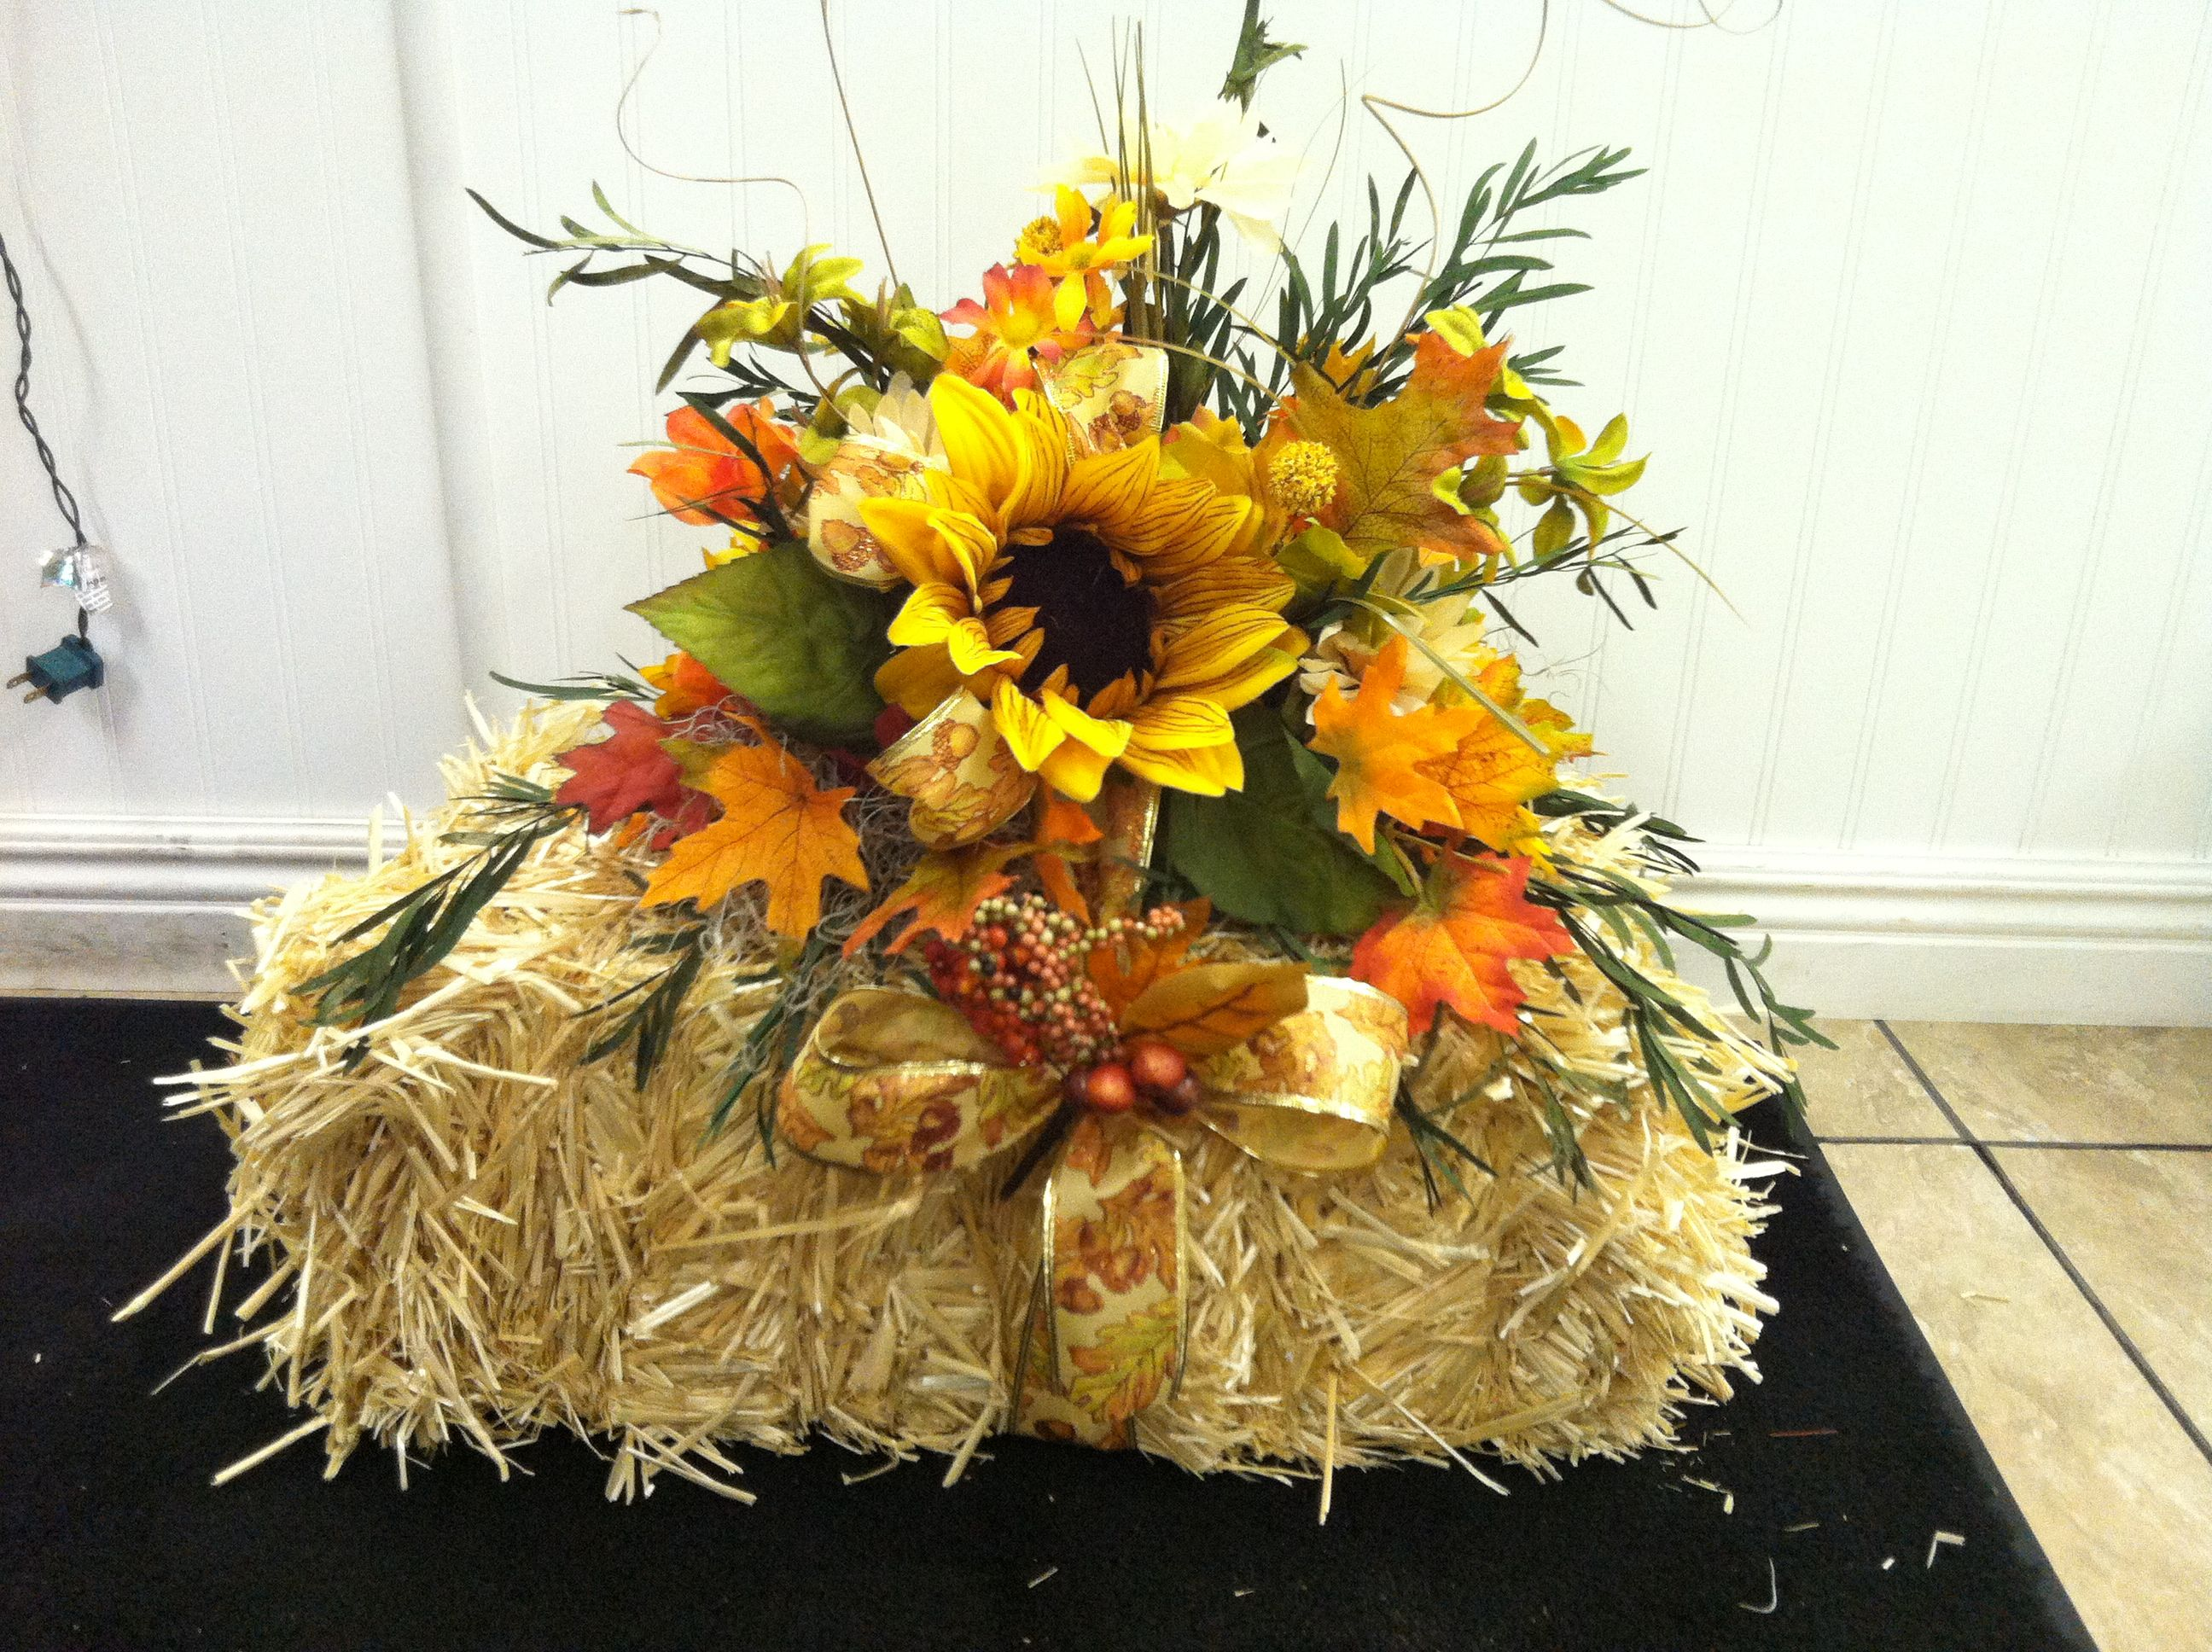 wedding centerpieces fake flowers%0A silk flowers nicely arranged on a small hay bale This would make great  decorations for an outdoor fall country wedding